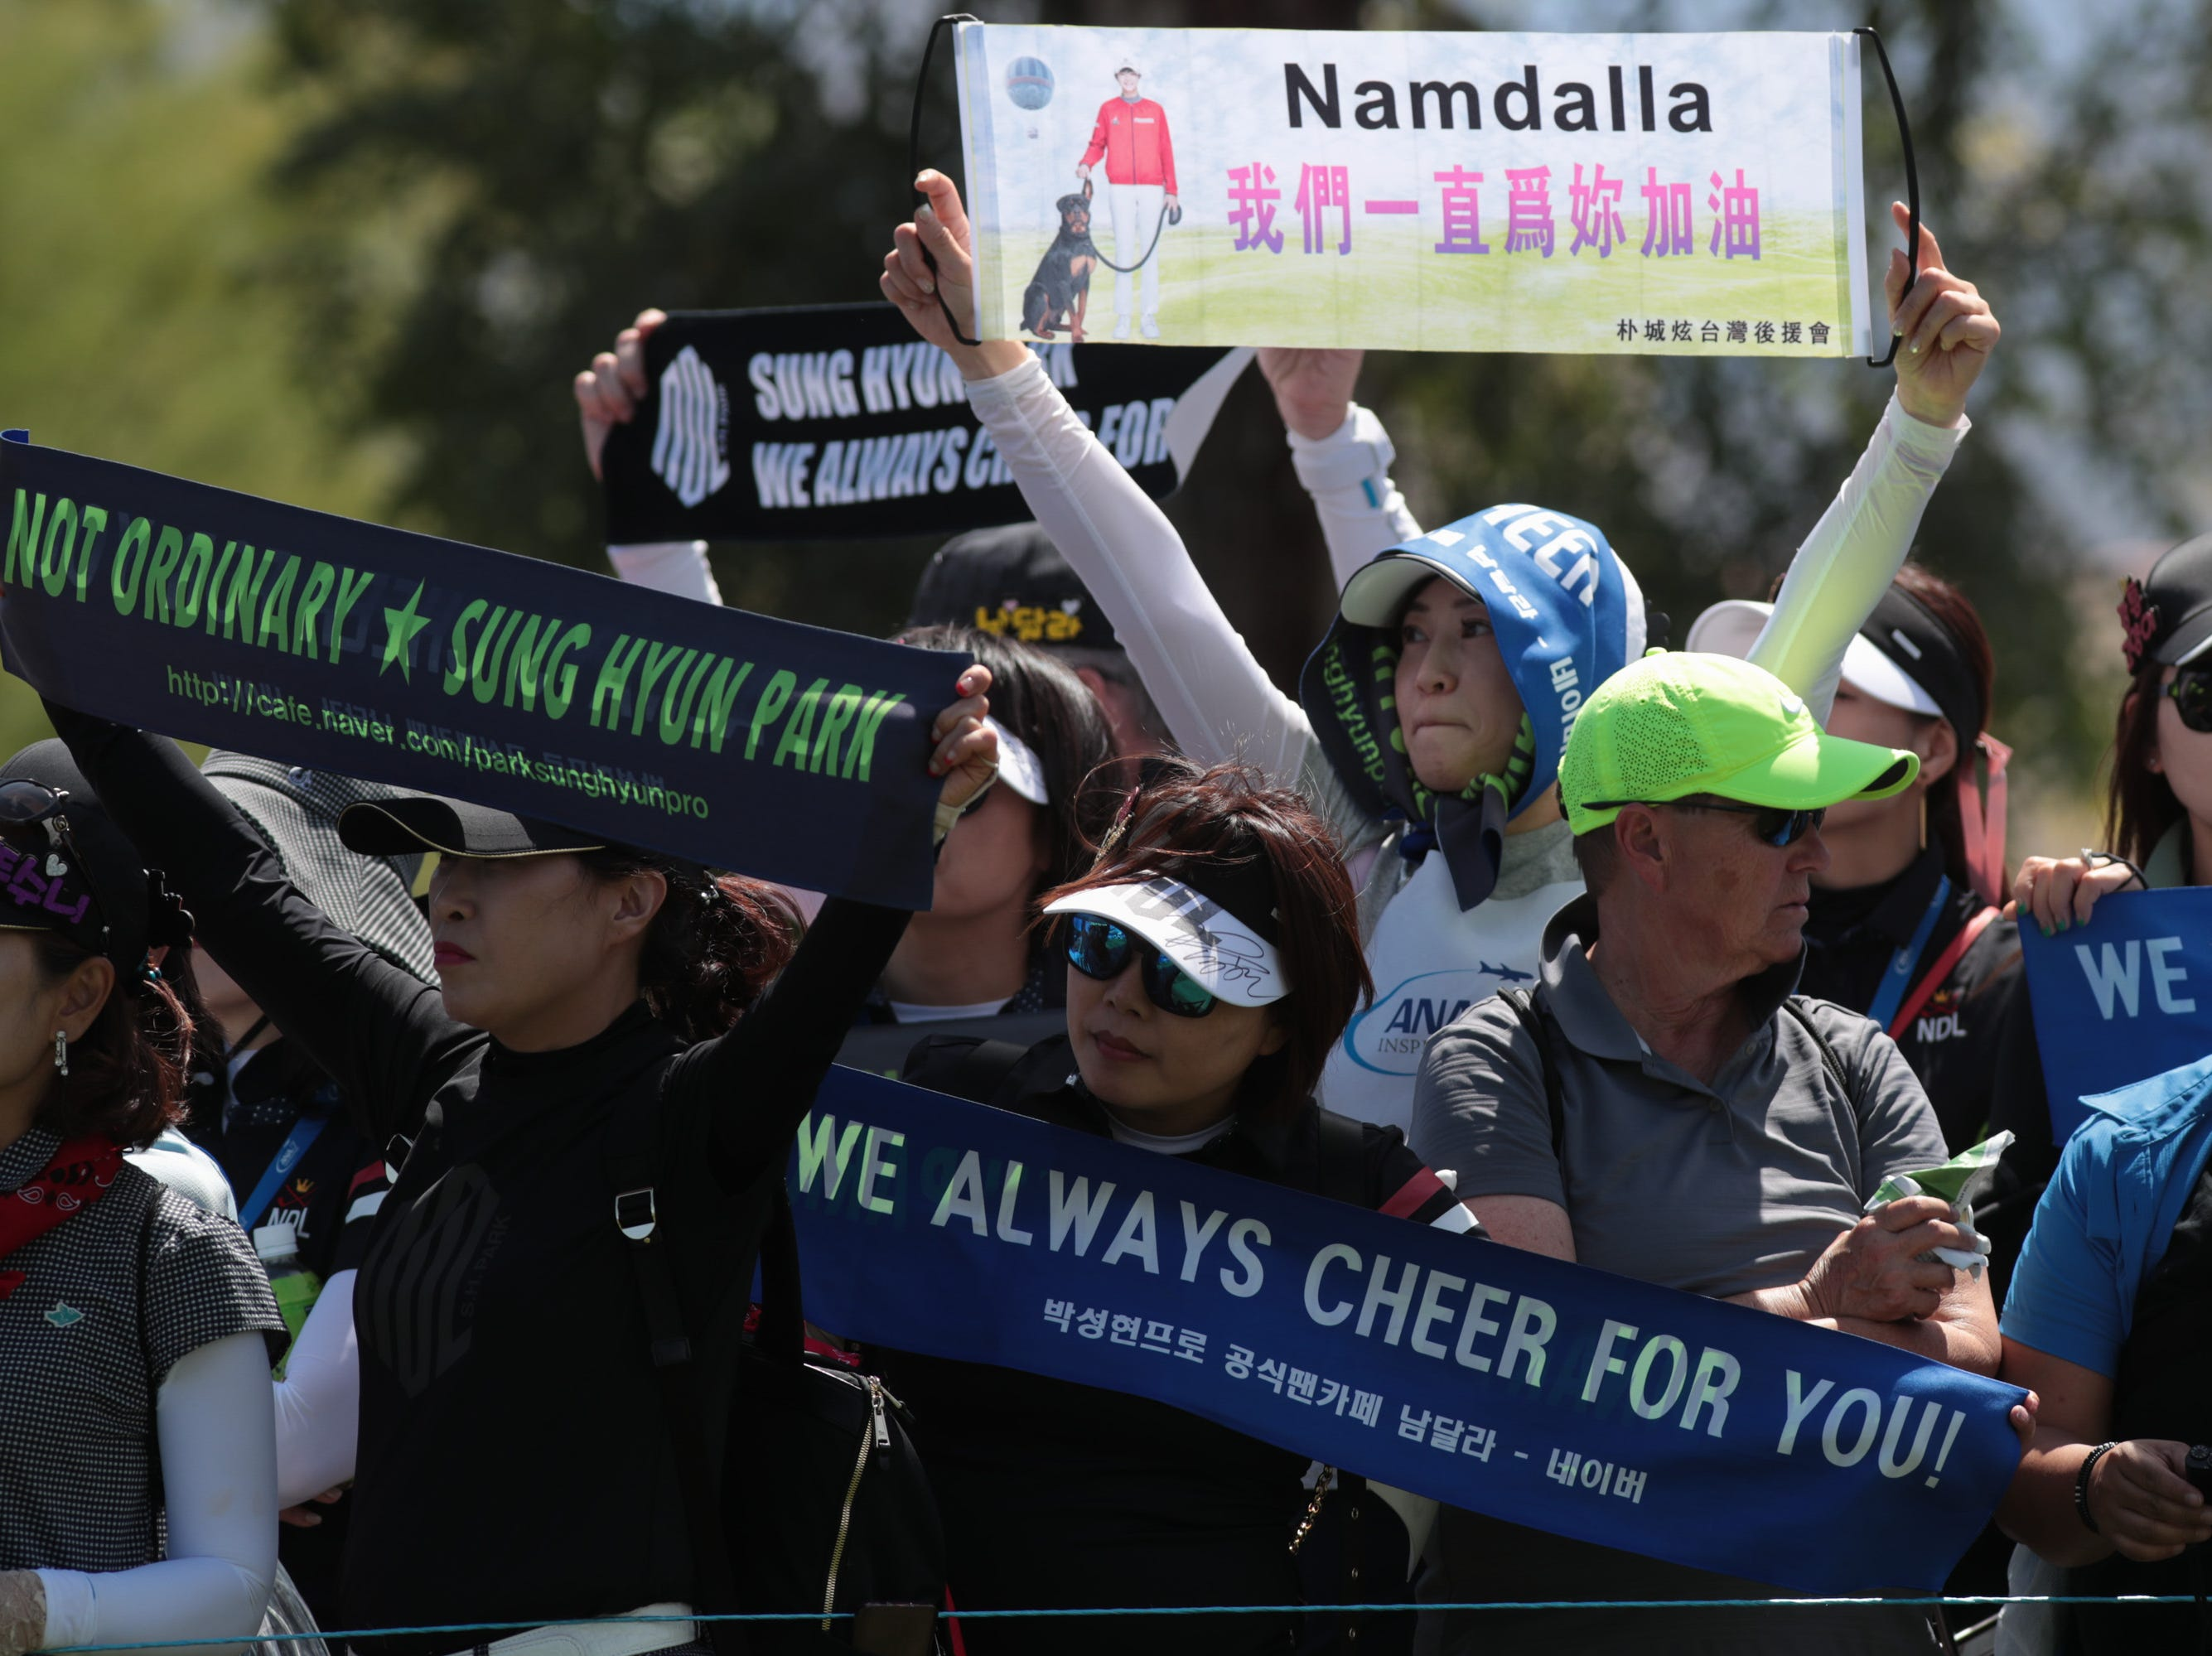 Fans show support for Sung Hyun Park at the ANA Inspiration, Rancho Mirage, Calif., April 6, 2019.